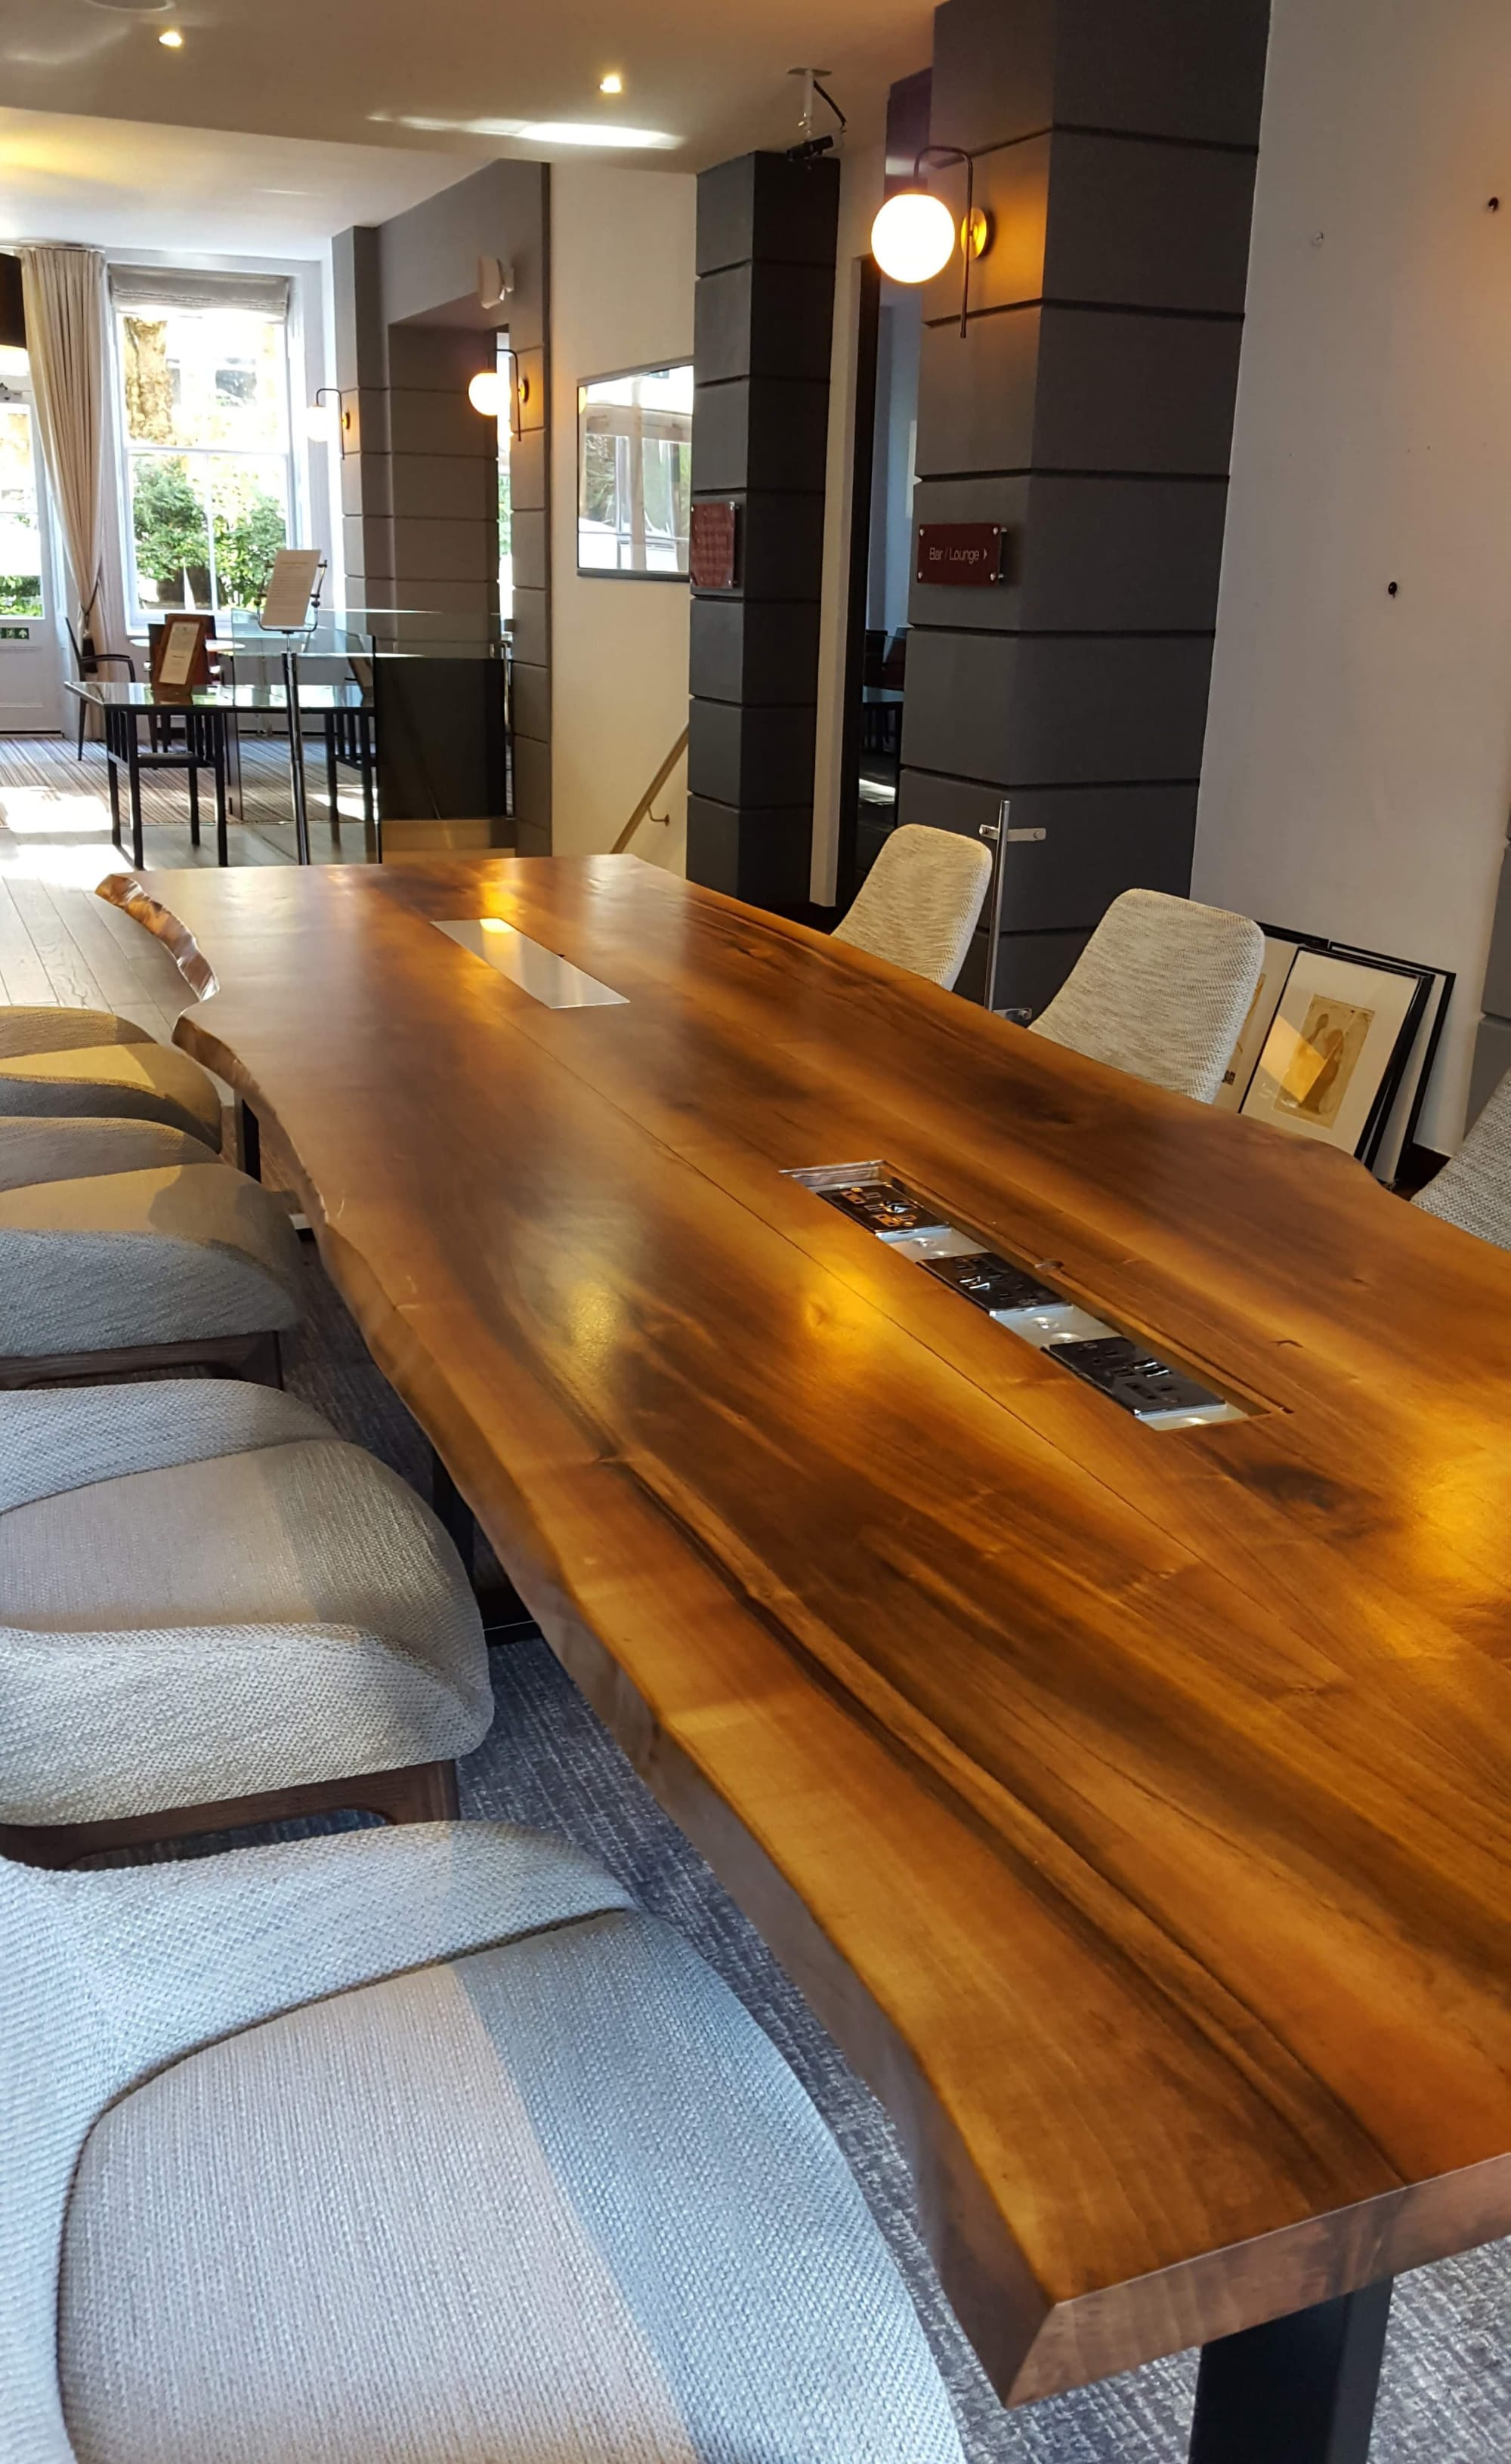 Tables by Handmade in Brighton seen at K+K Hotel George Kensington, London - Serbian Walnut Live-Edge Sharing Table